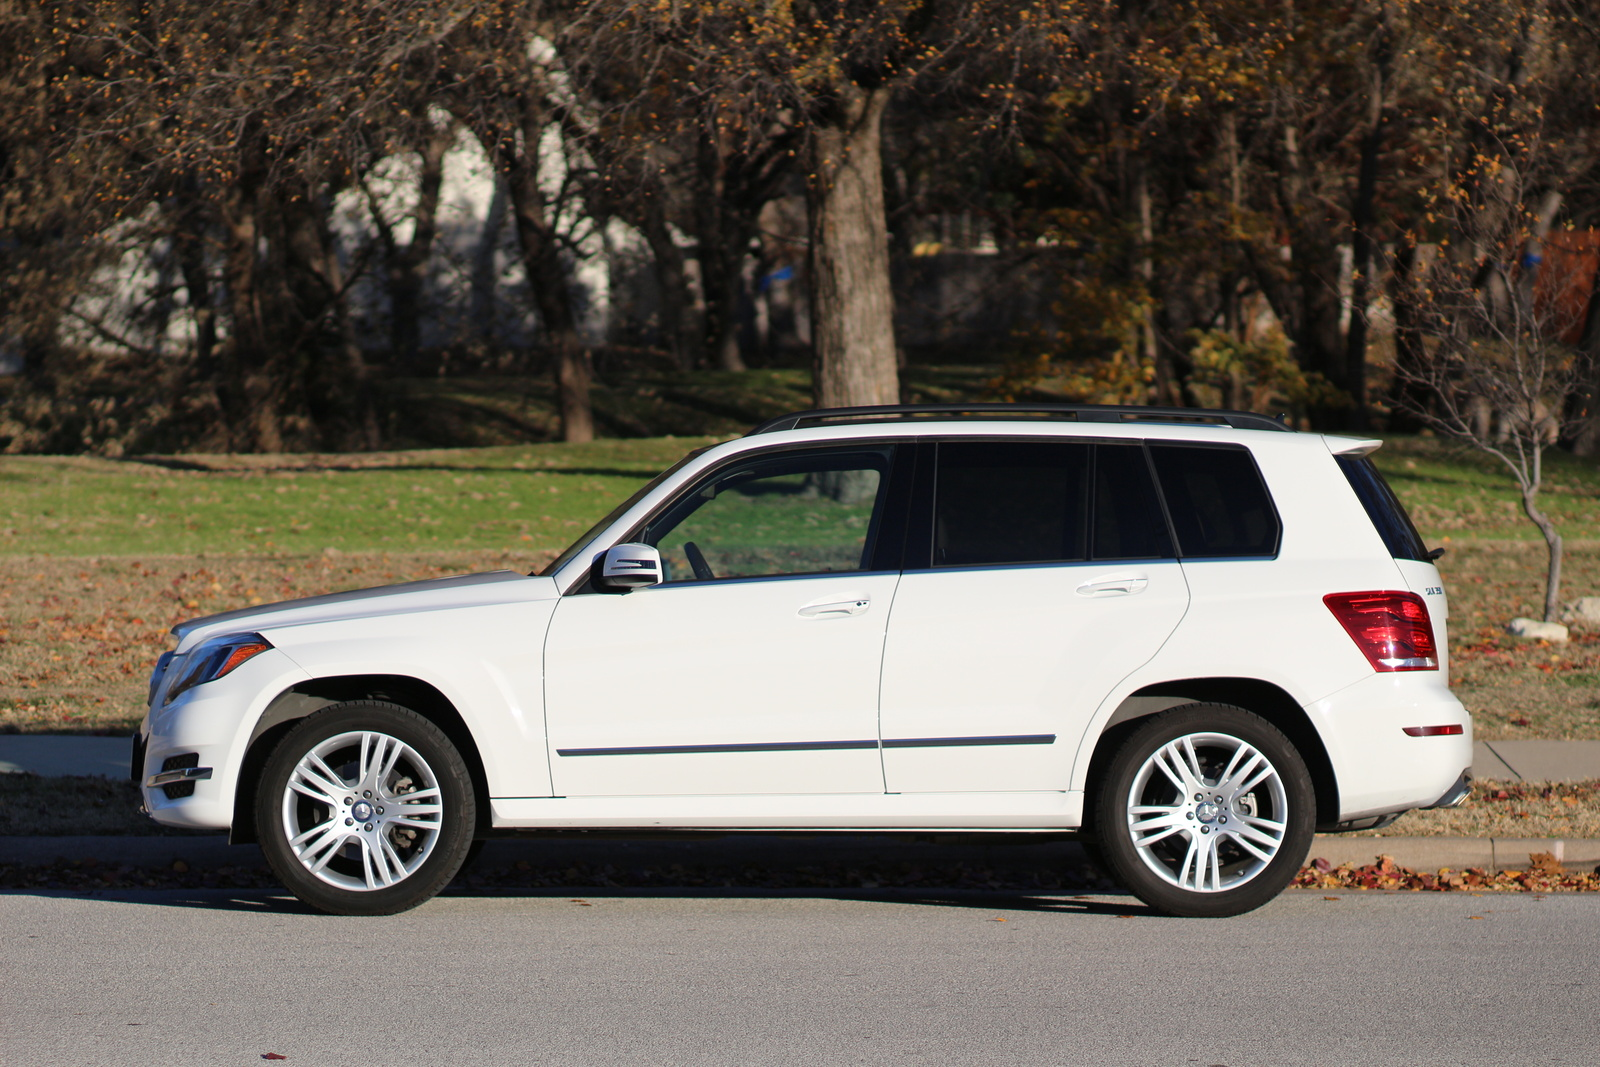 Mercedes benz glk 350 mercedes benz glk class for Mercedes benz glk 350 review